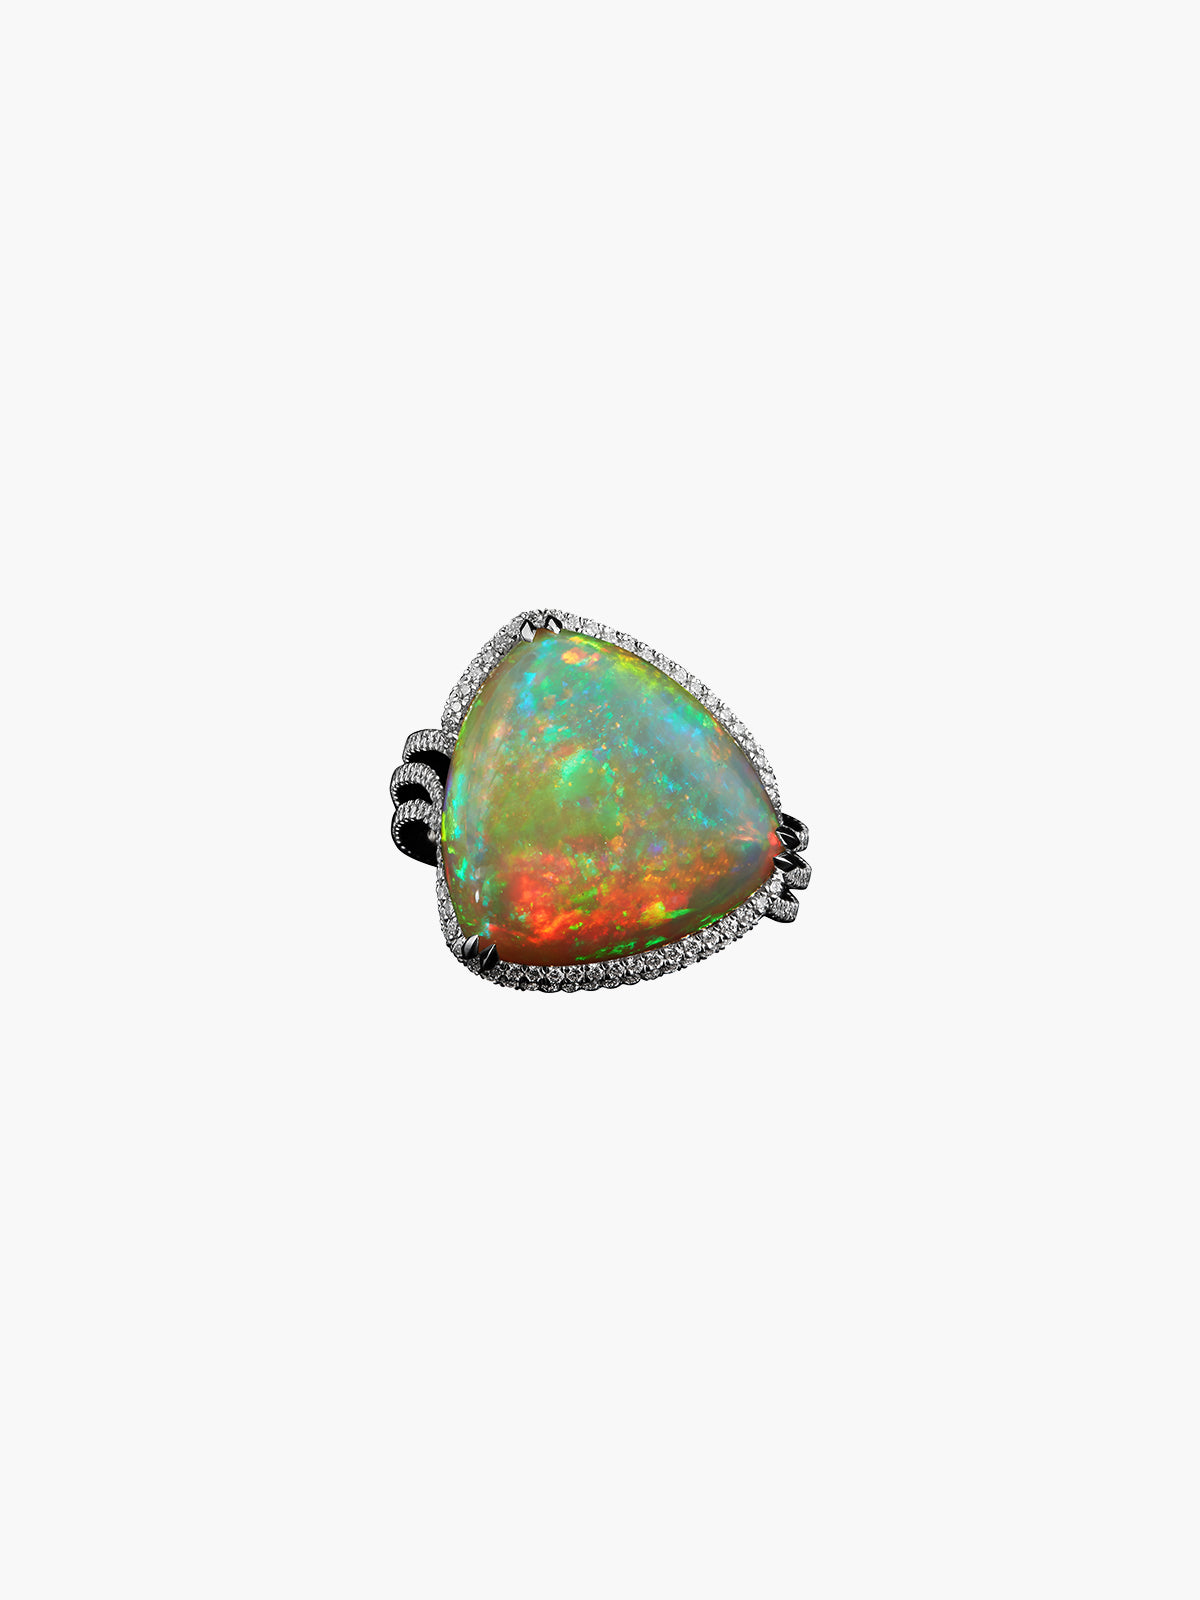 Checkerboard-Harlequin Opal Diamond Ring Checkerboard-Harlequin Opal Diamond Ring